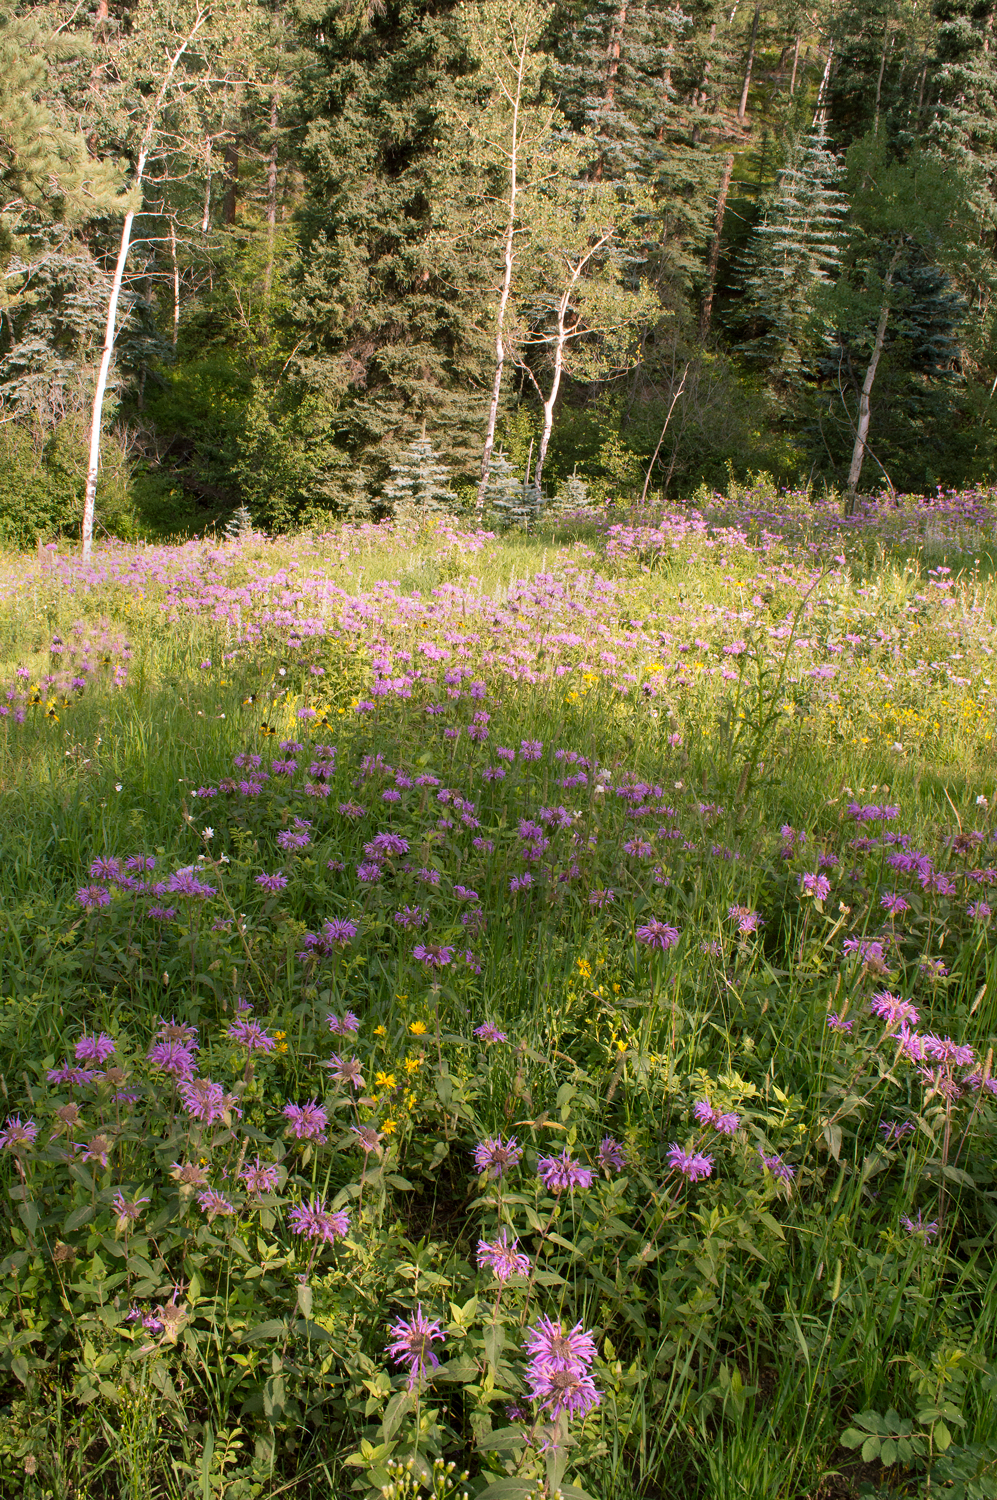 Mountain Wildflowers, Evergreen, CO    Nikon D3200 • Nikon 18-55mm lens • 15mm • F/22 • 1/50s • ISO 400